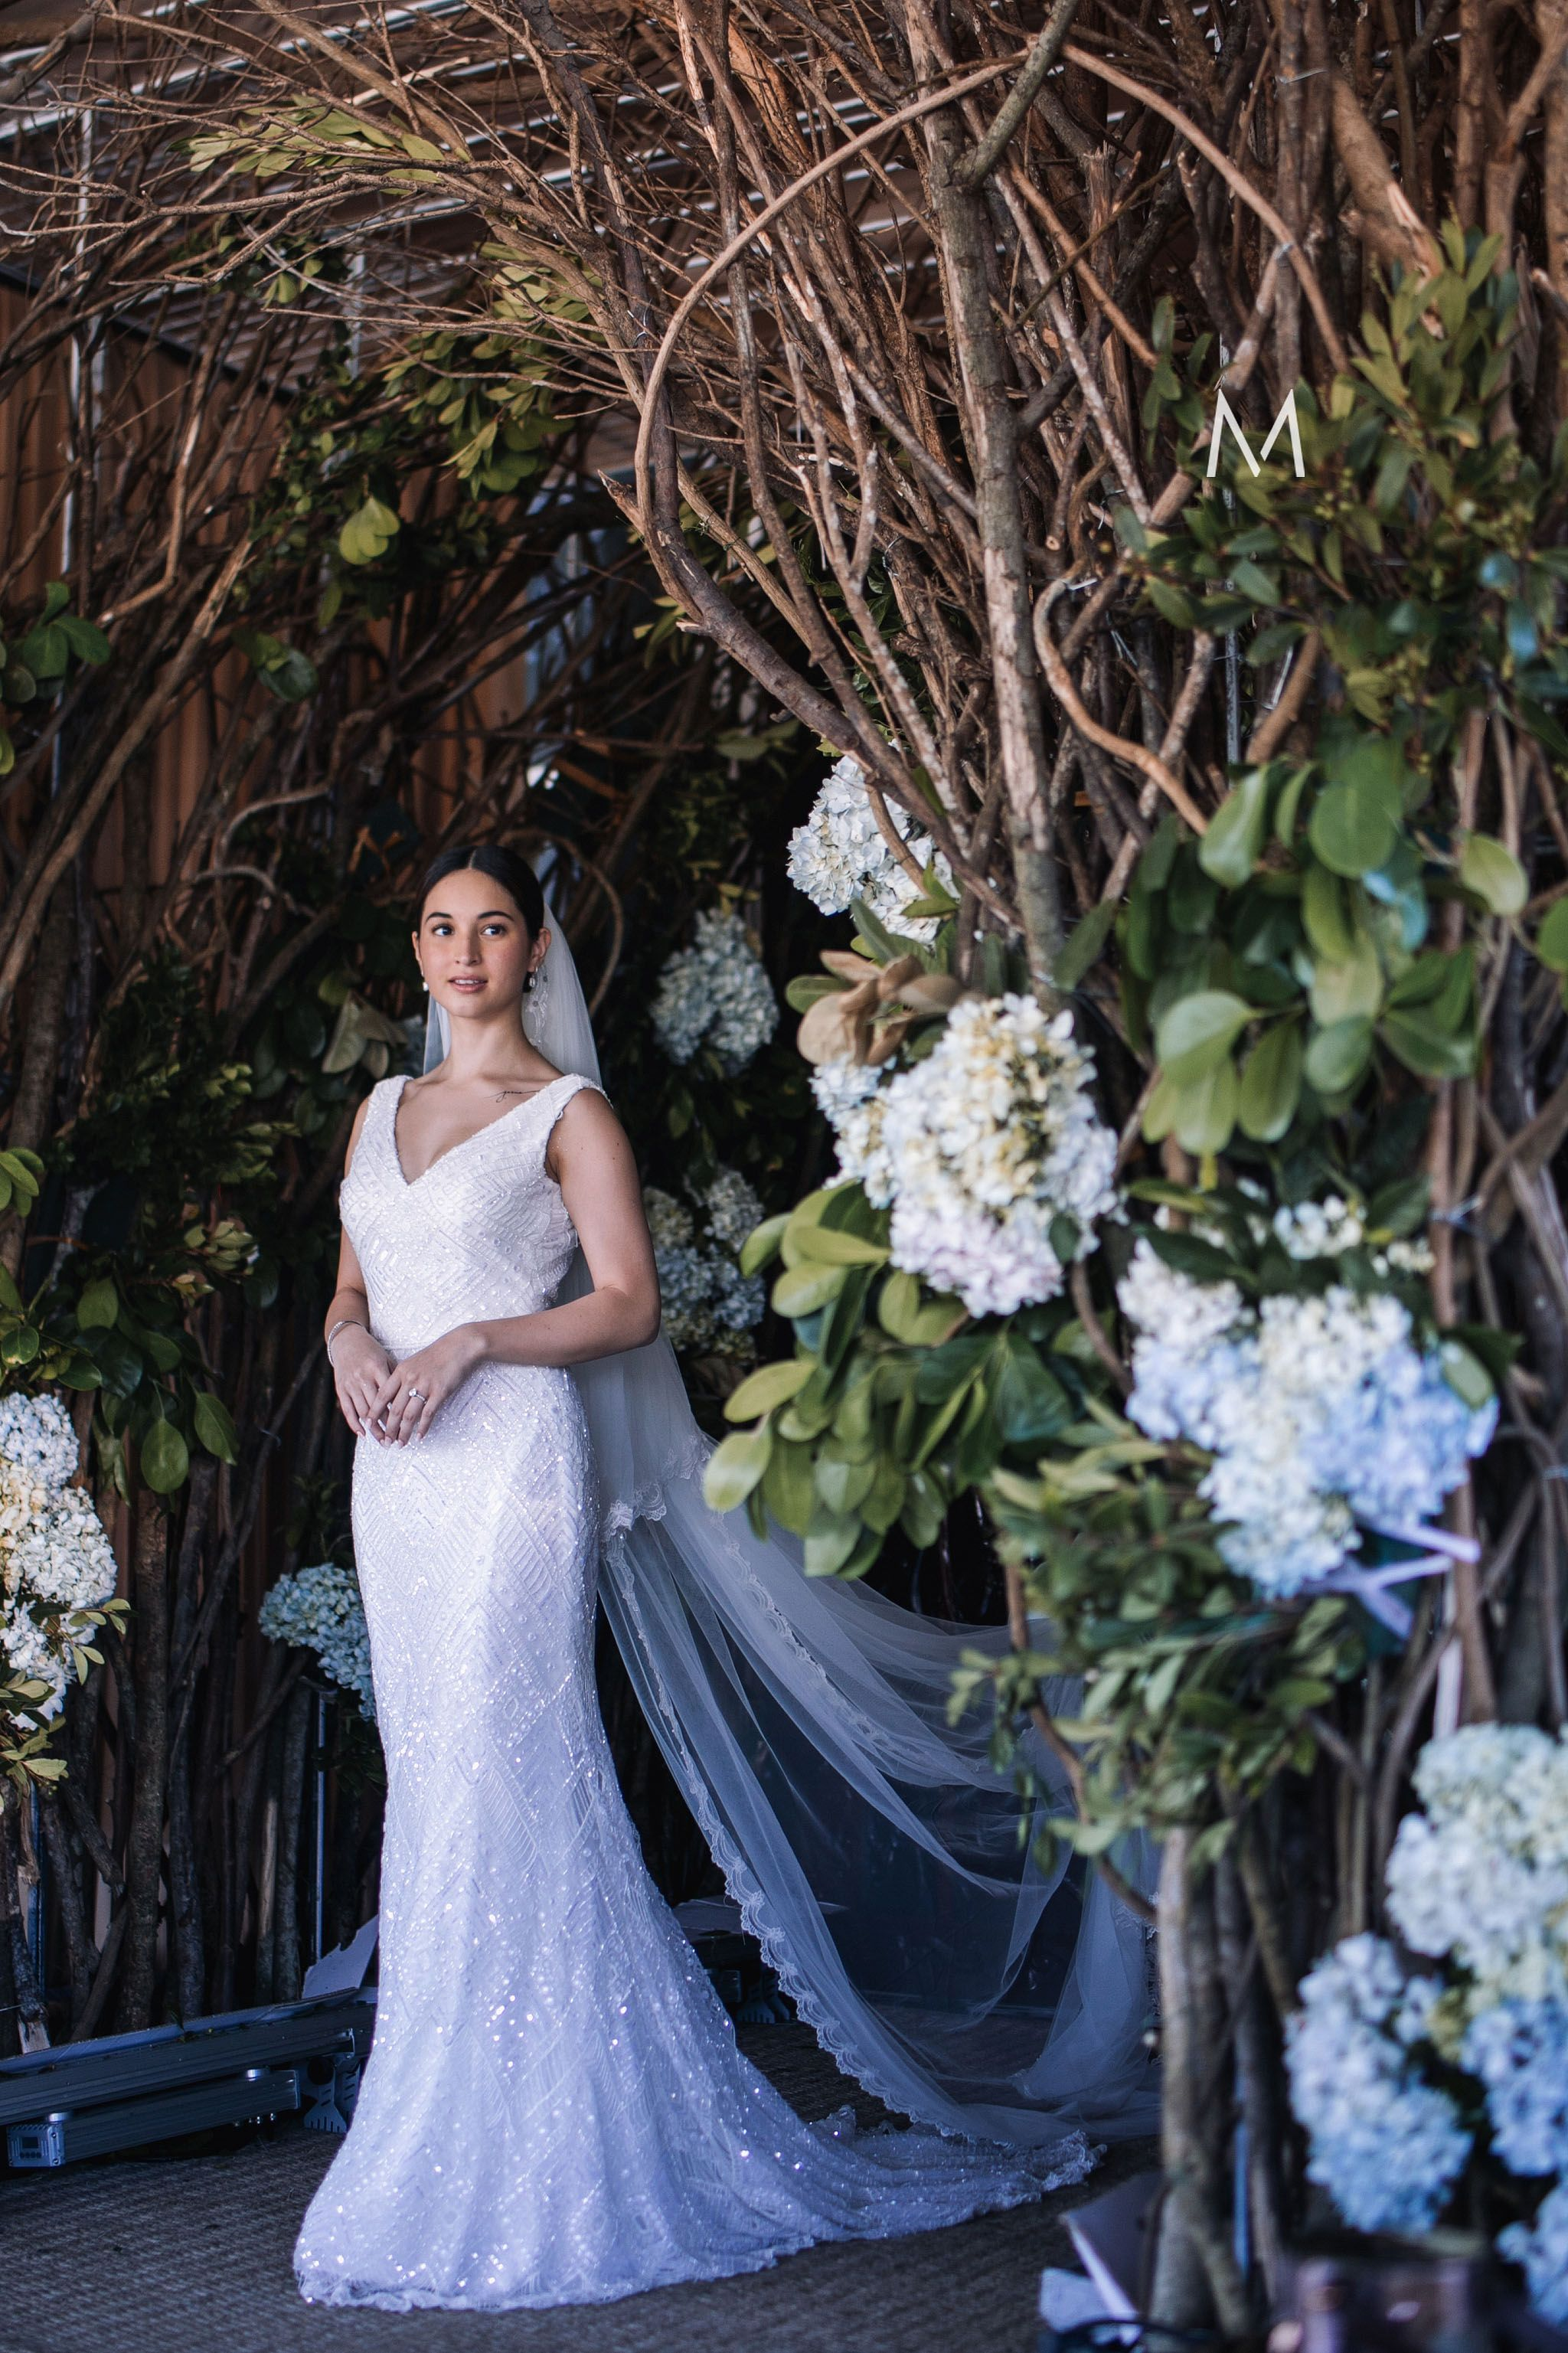 Discussion on this topic: Who has designed Coleen's wedding dress, who-has-designed-coleens-wedding-dress/